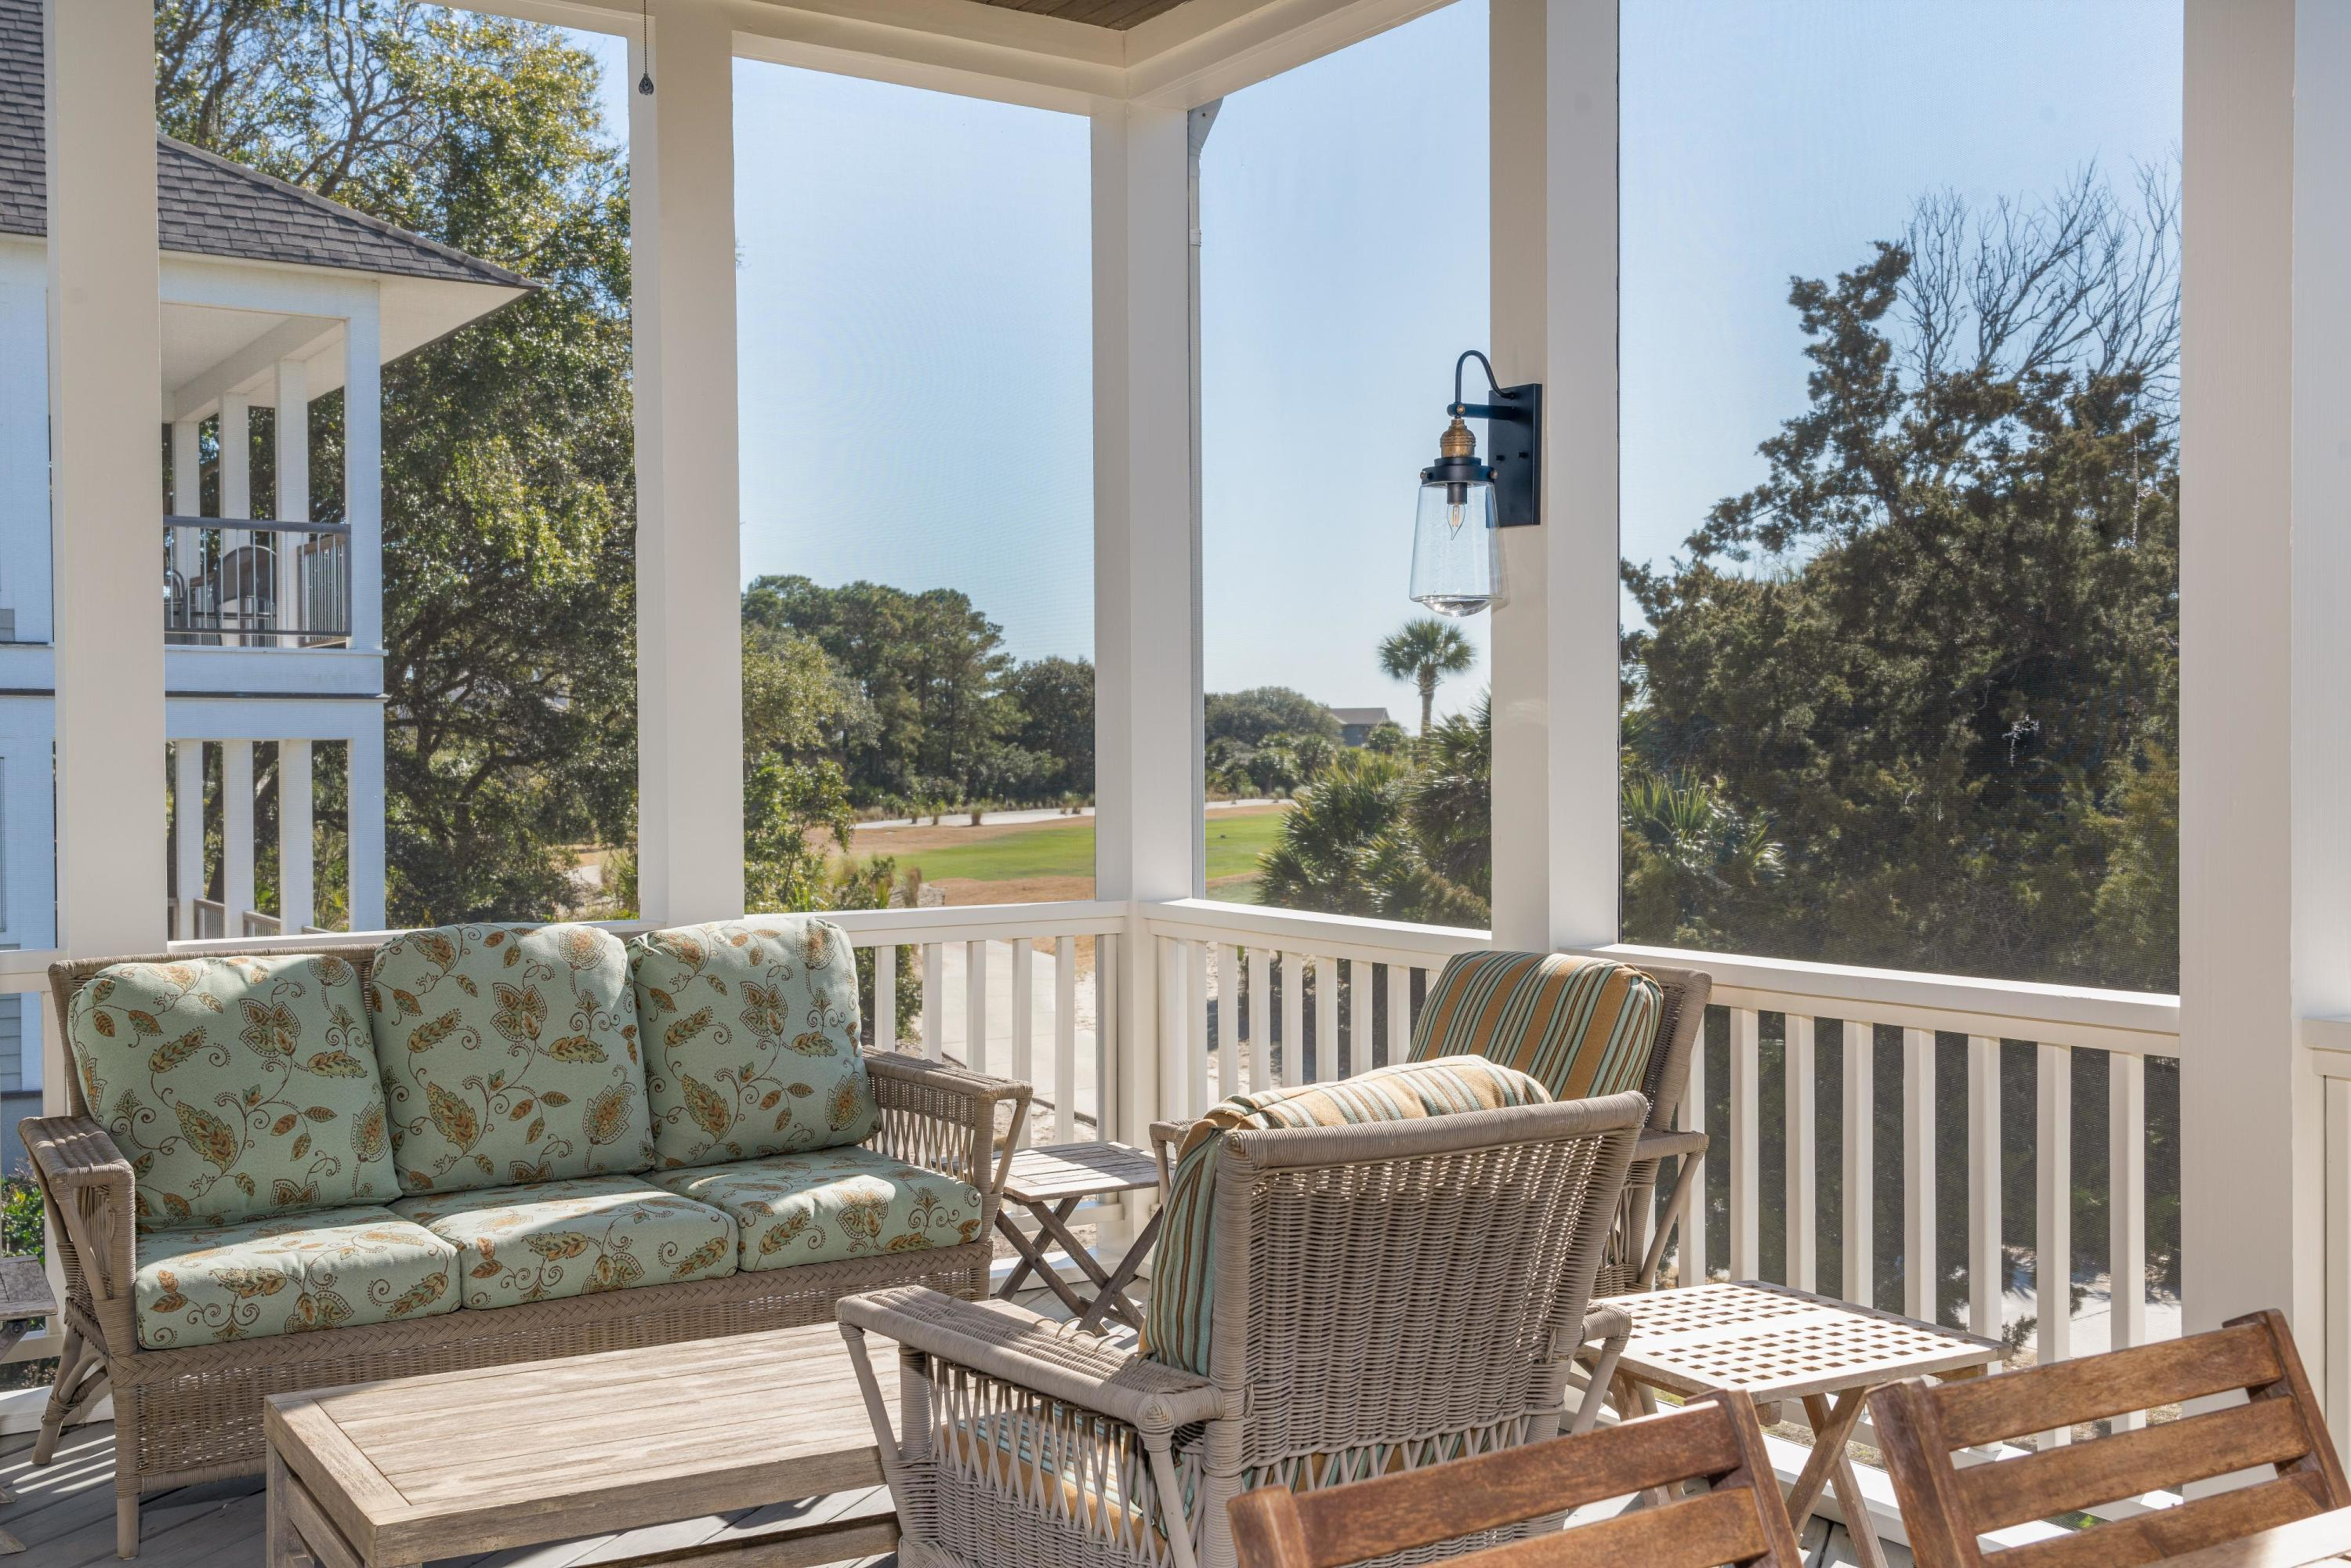 Seabrook Island Homes For Sale - 2335 Oyster Catcher, Seabrook Island, SC - 57